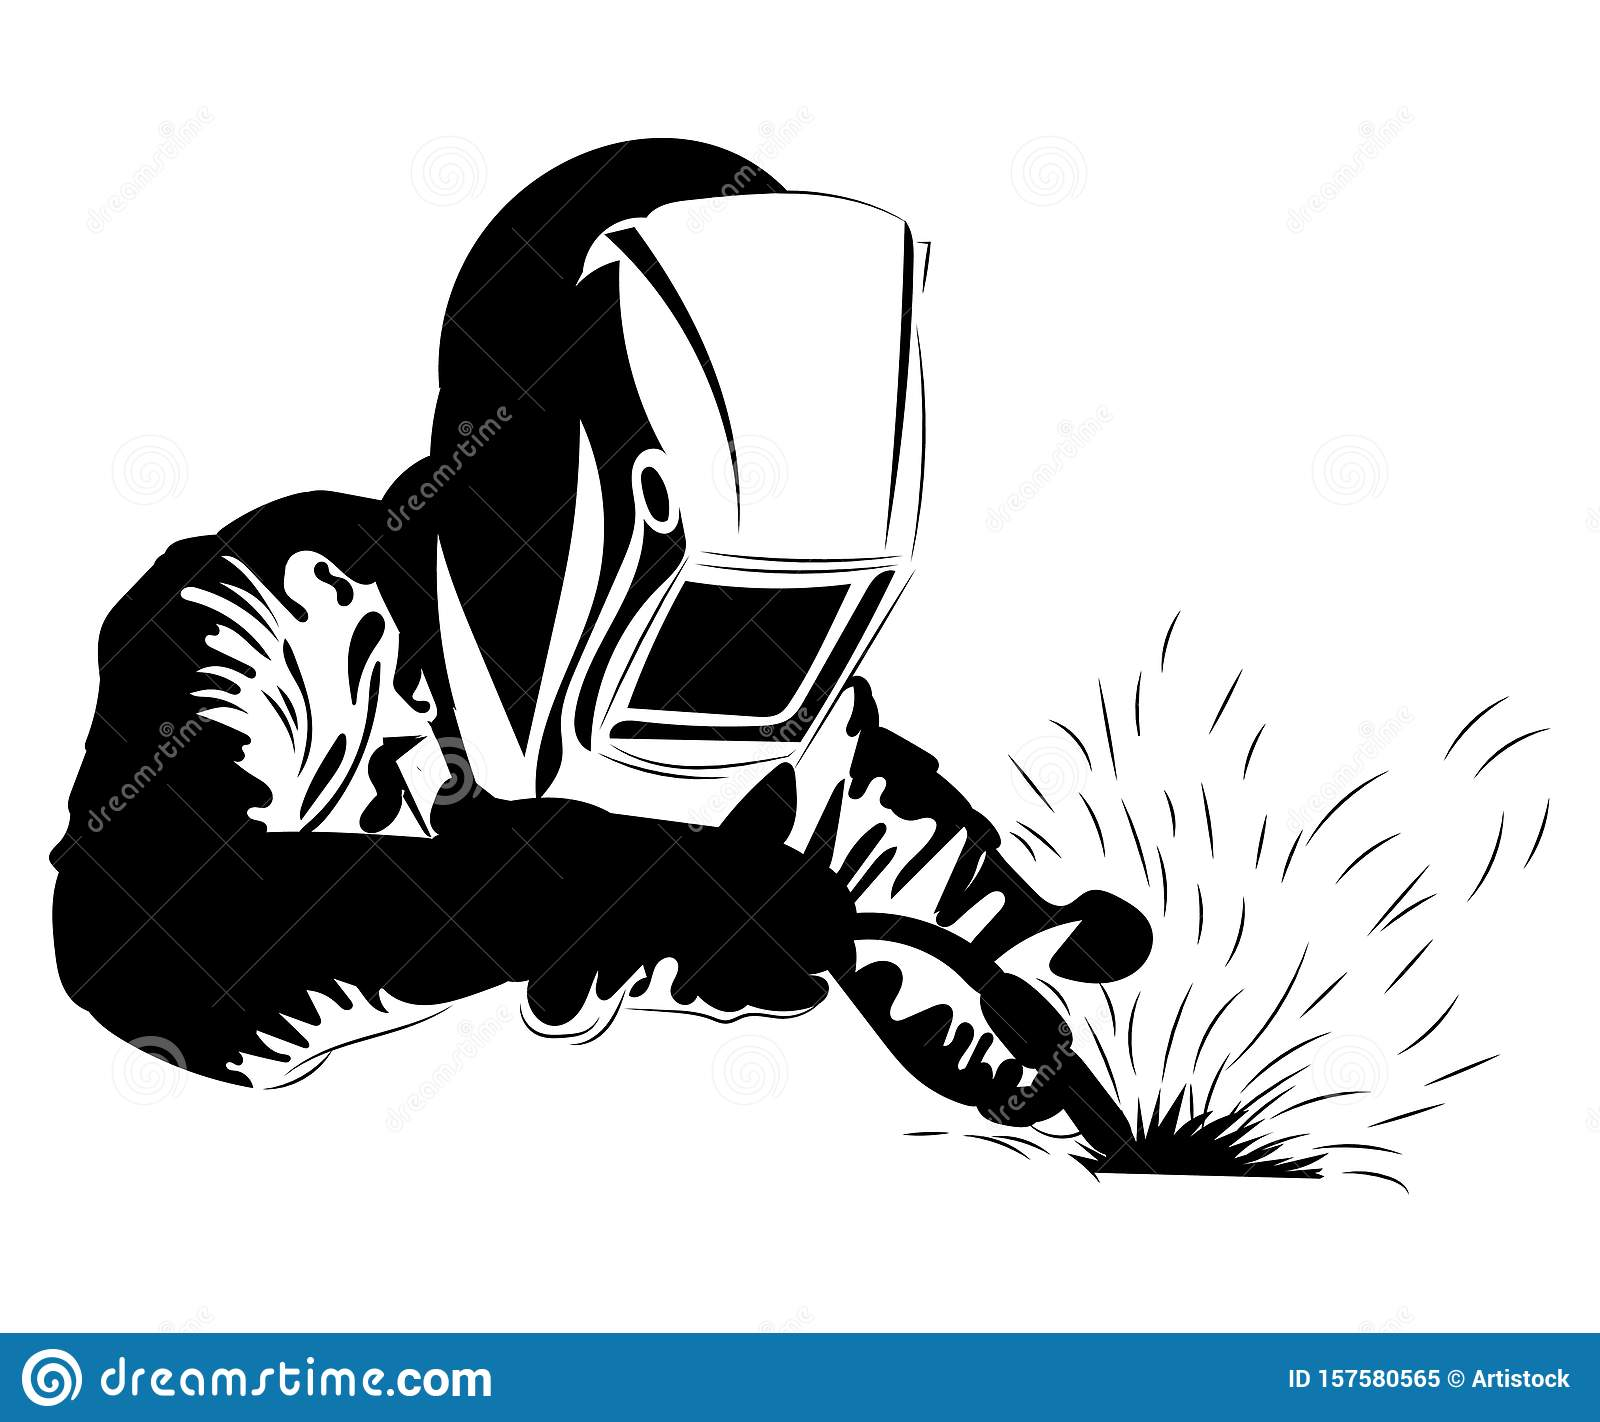 Welder Welds Metal Black And White Illustration Of A Welder In Work Clothes Linear Art Silhouette Of A Welder Vector Stock Vector Illustration Of Hand Mask 157580565